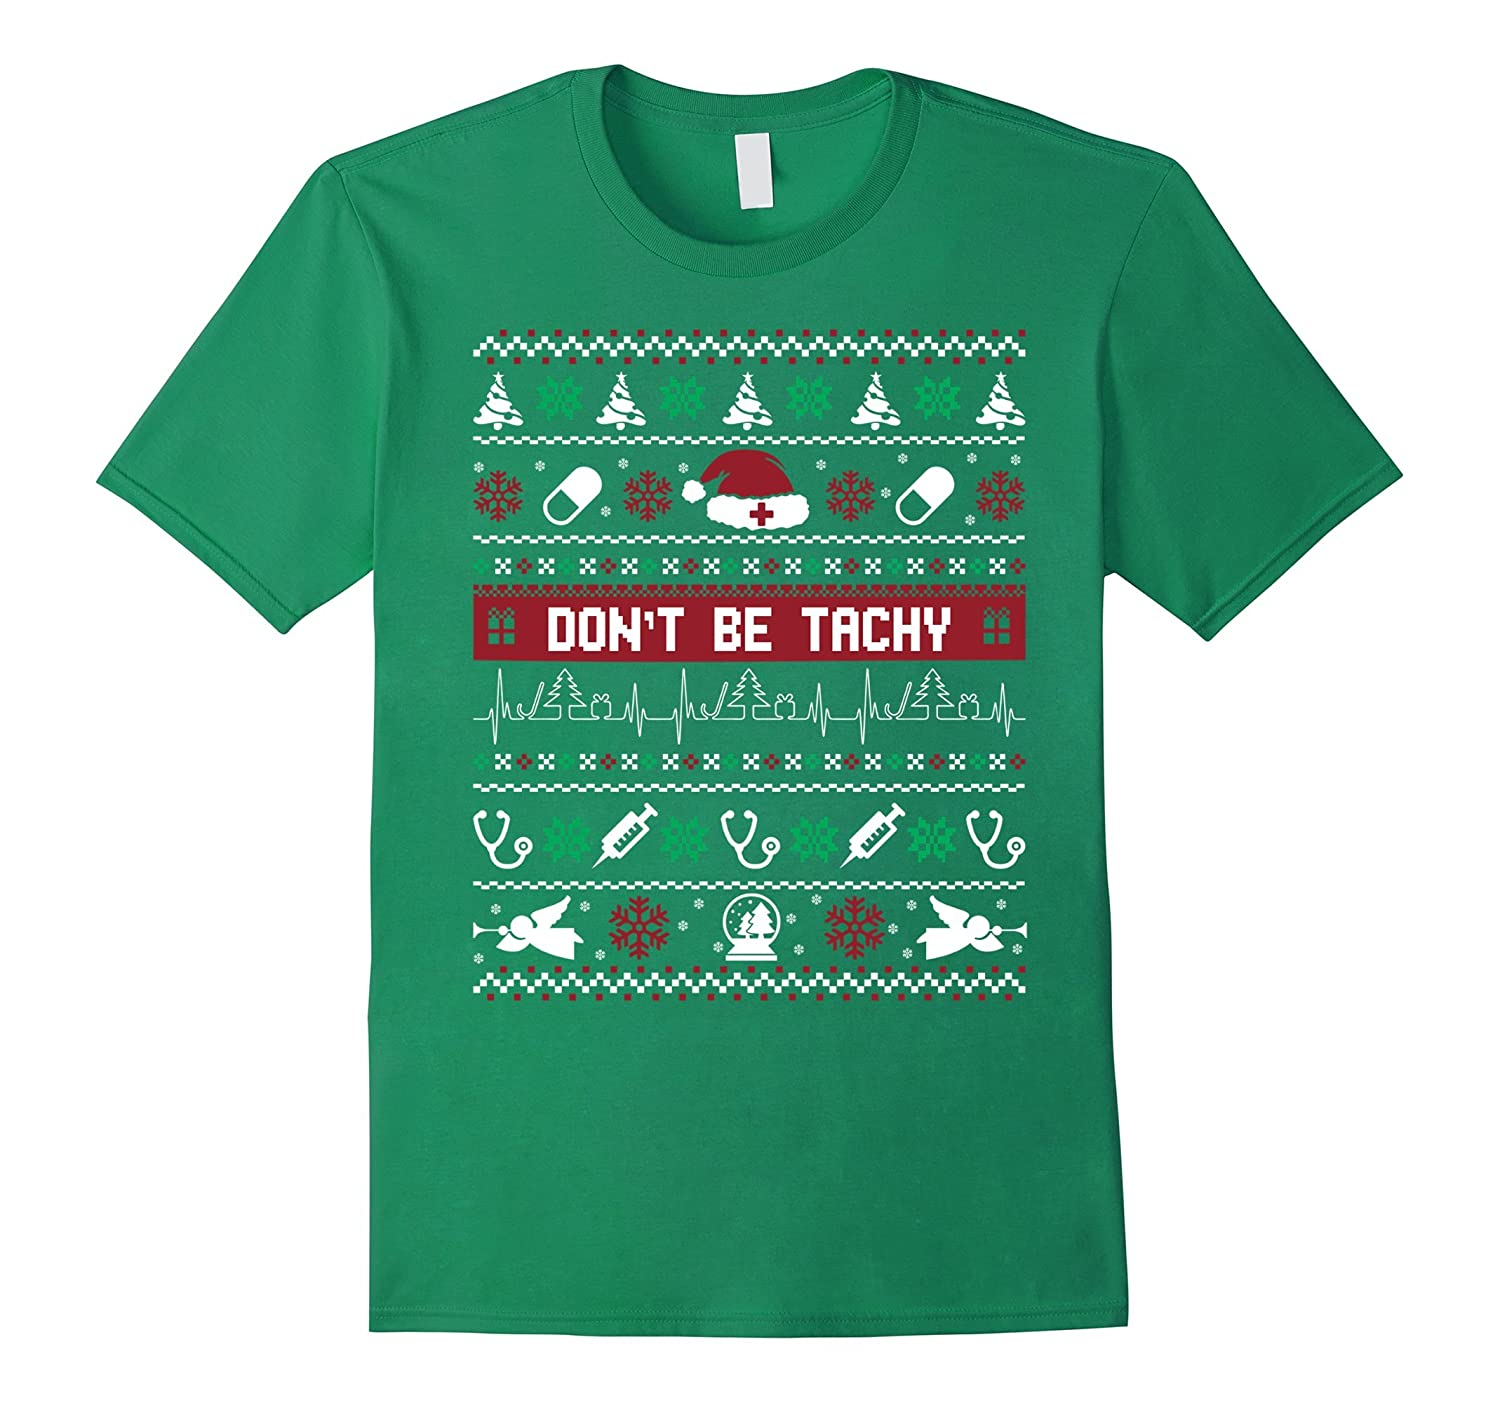 Nurse Don't Be Tachy Ugly Christmas T-Shirt Funny Gift-CL